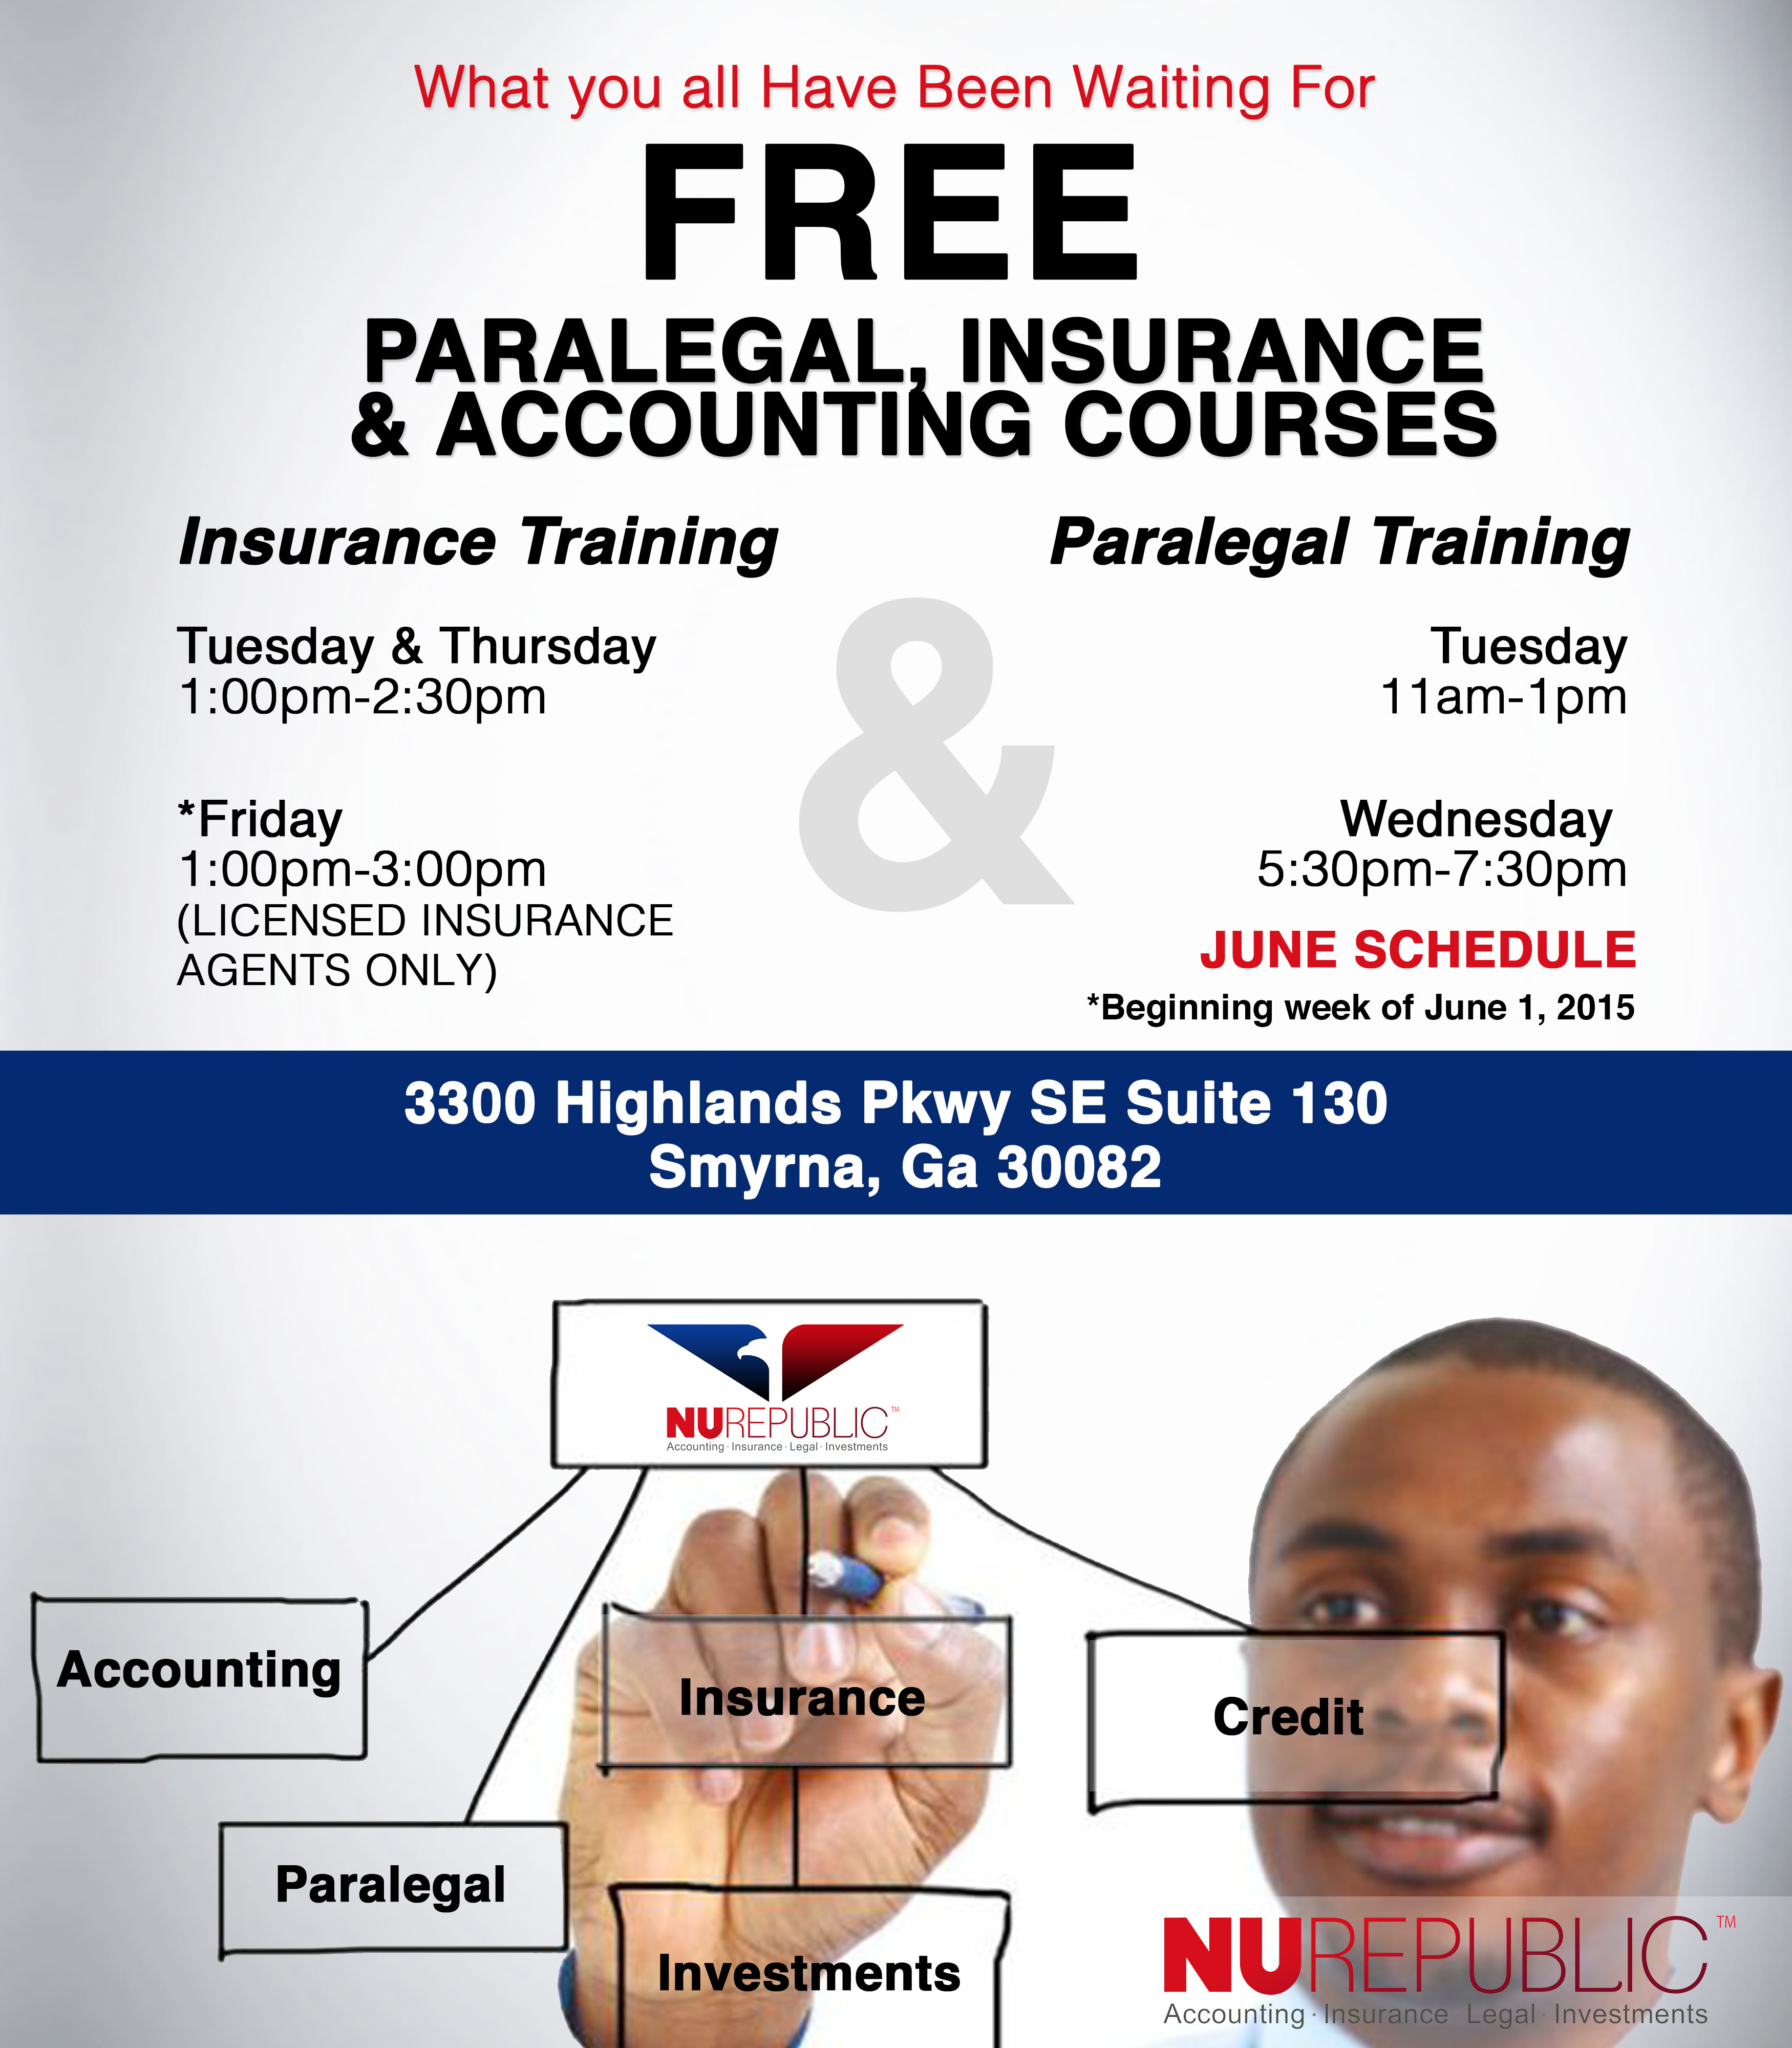 Paralegal accounting foundation courses